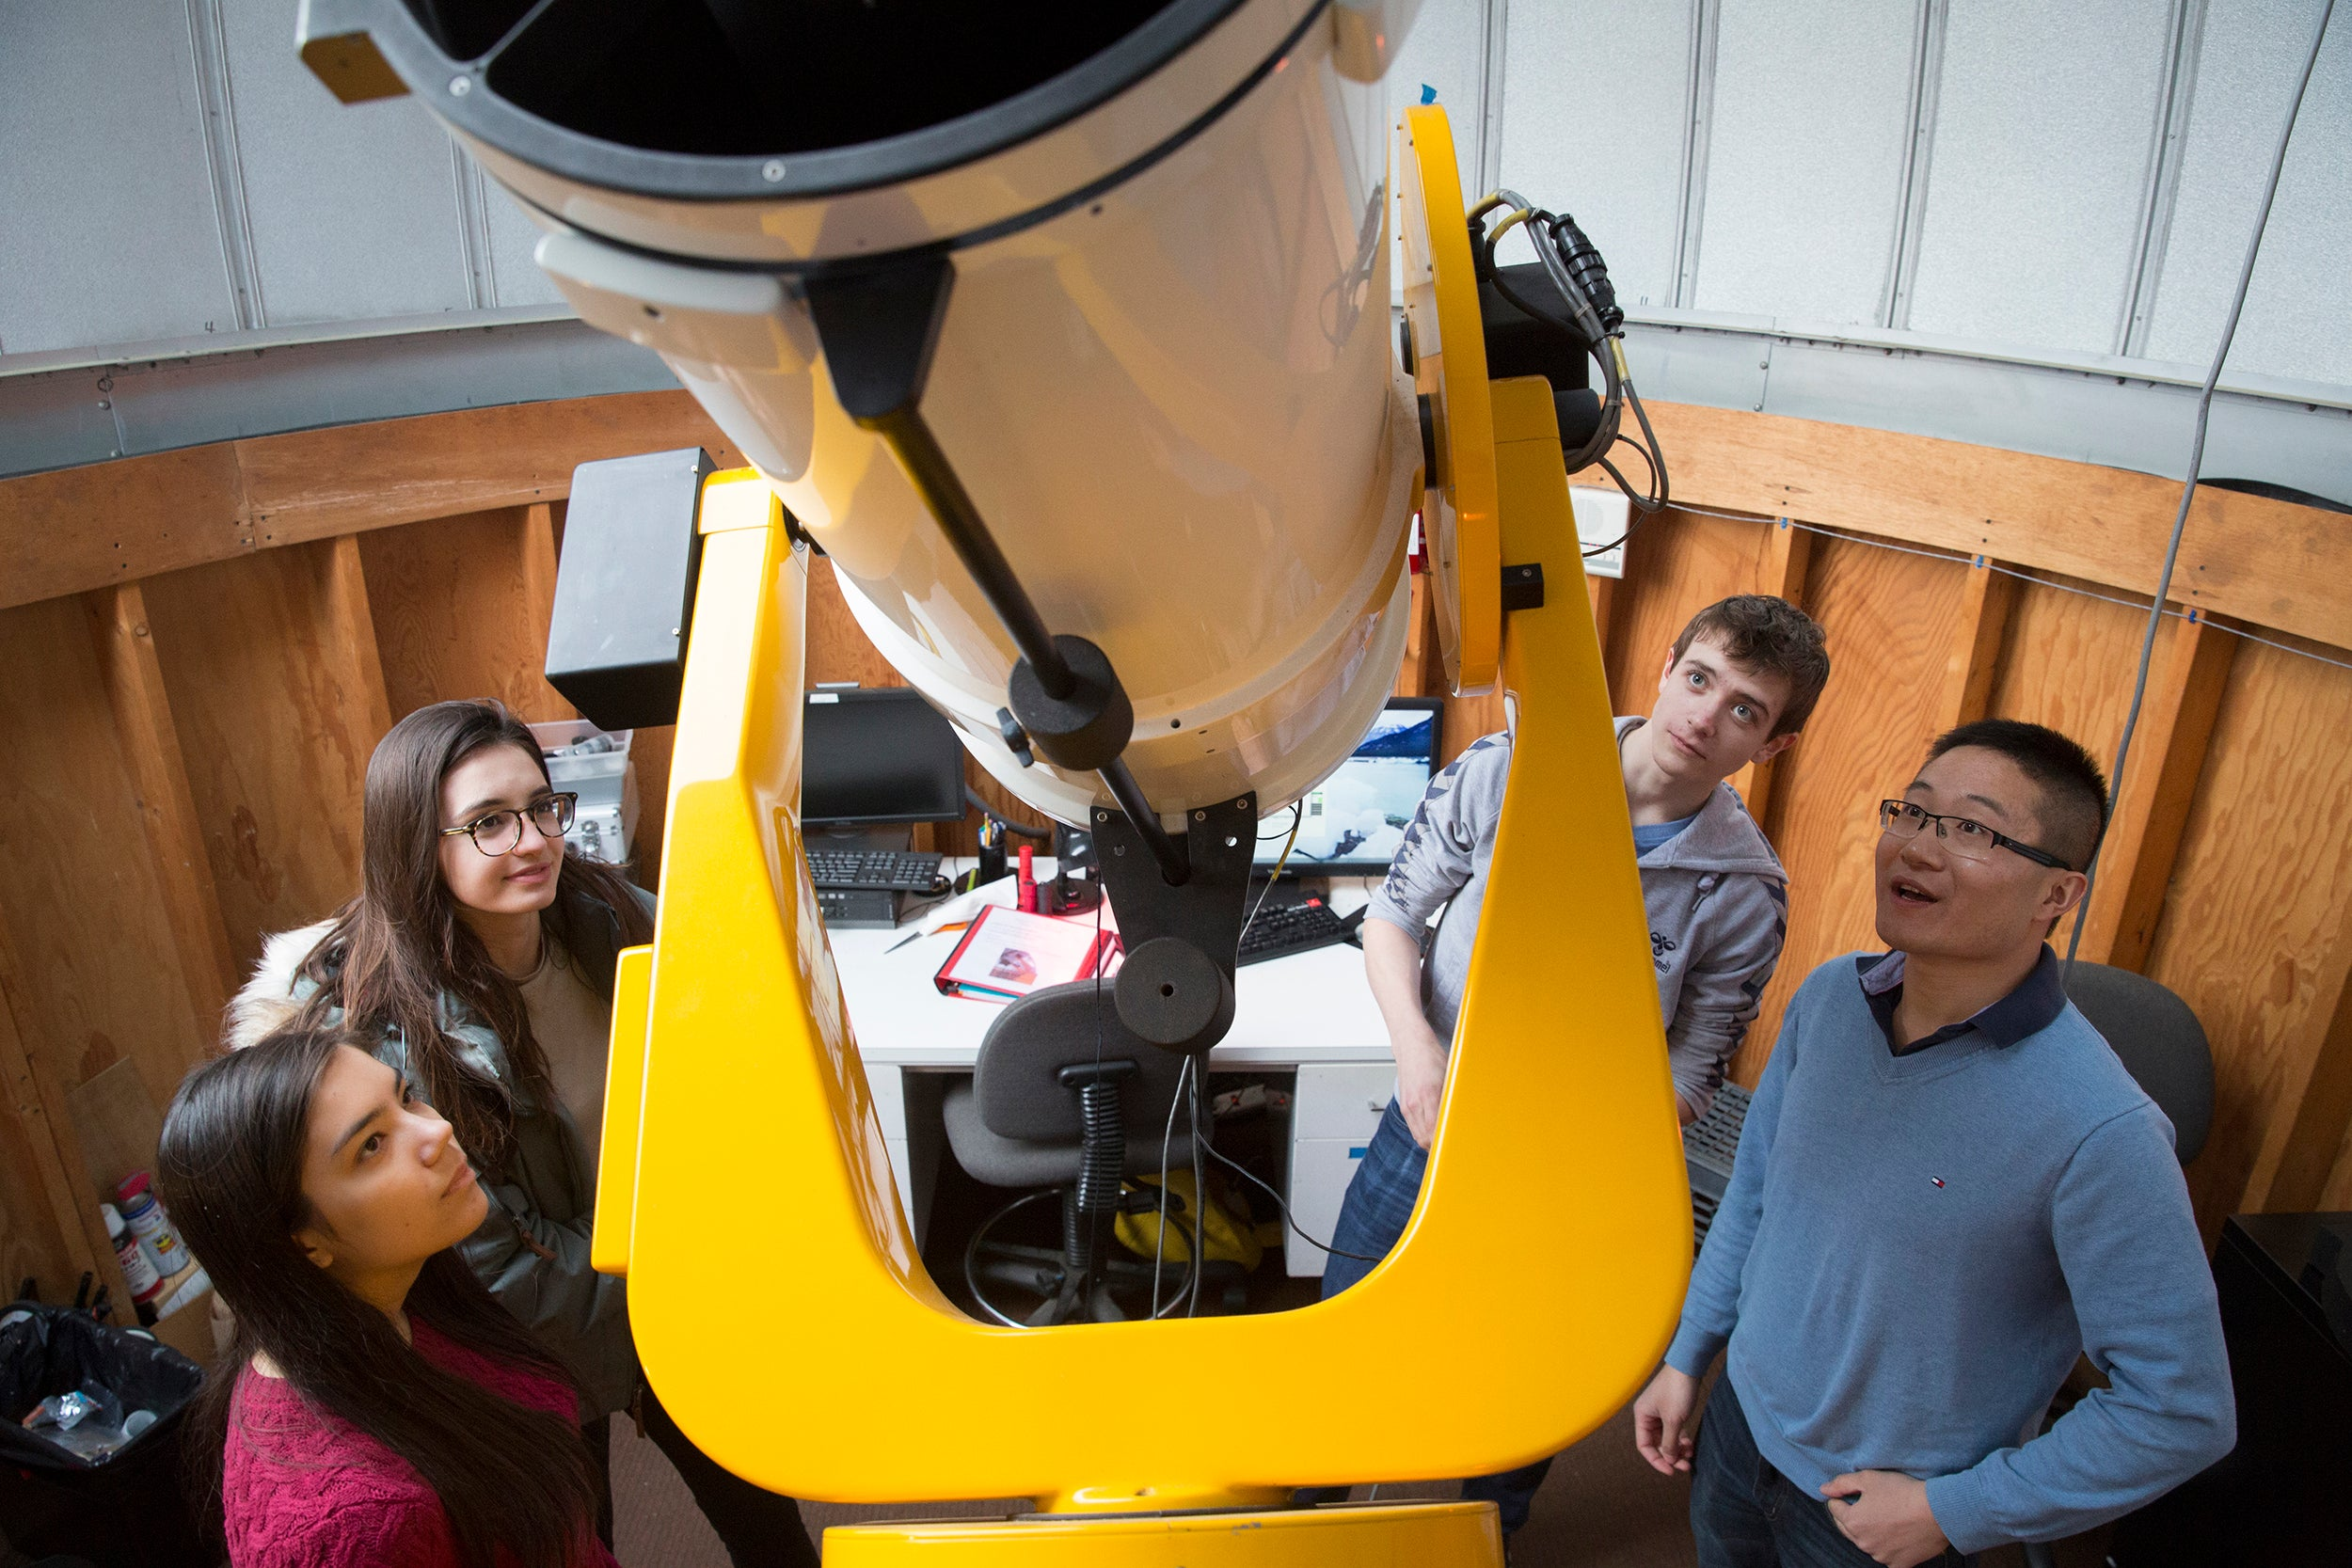 CRLS students Sophia Sonnert (from left), Tatiana Athanasopoulos, and Jonas Hansen meet with Harvard postdoc George Zhou at the Clay Telescope at the Science Center. Zhou is a mentor in the Science Research Mentoring Program at the CfA.